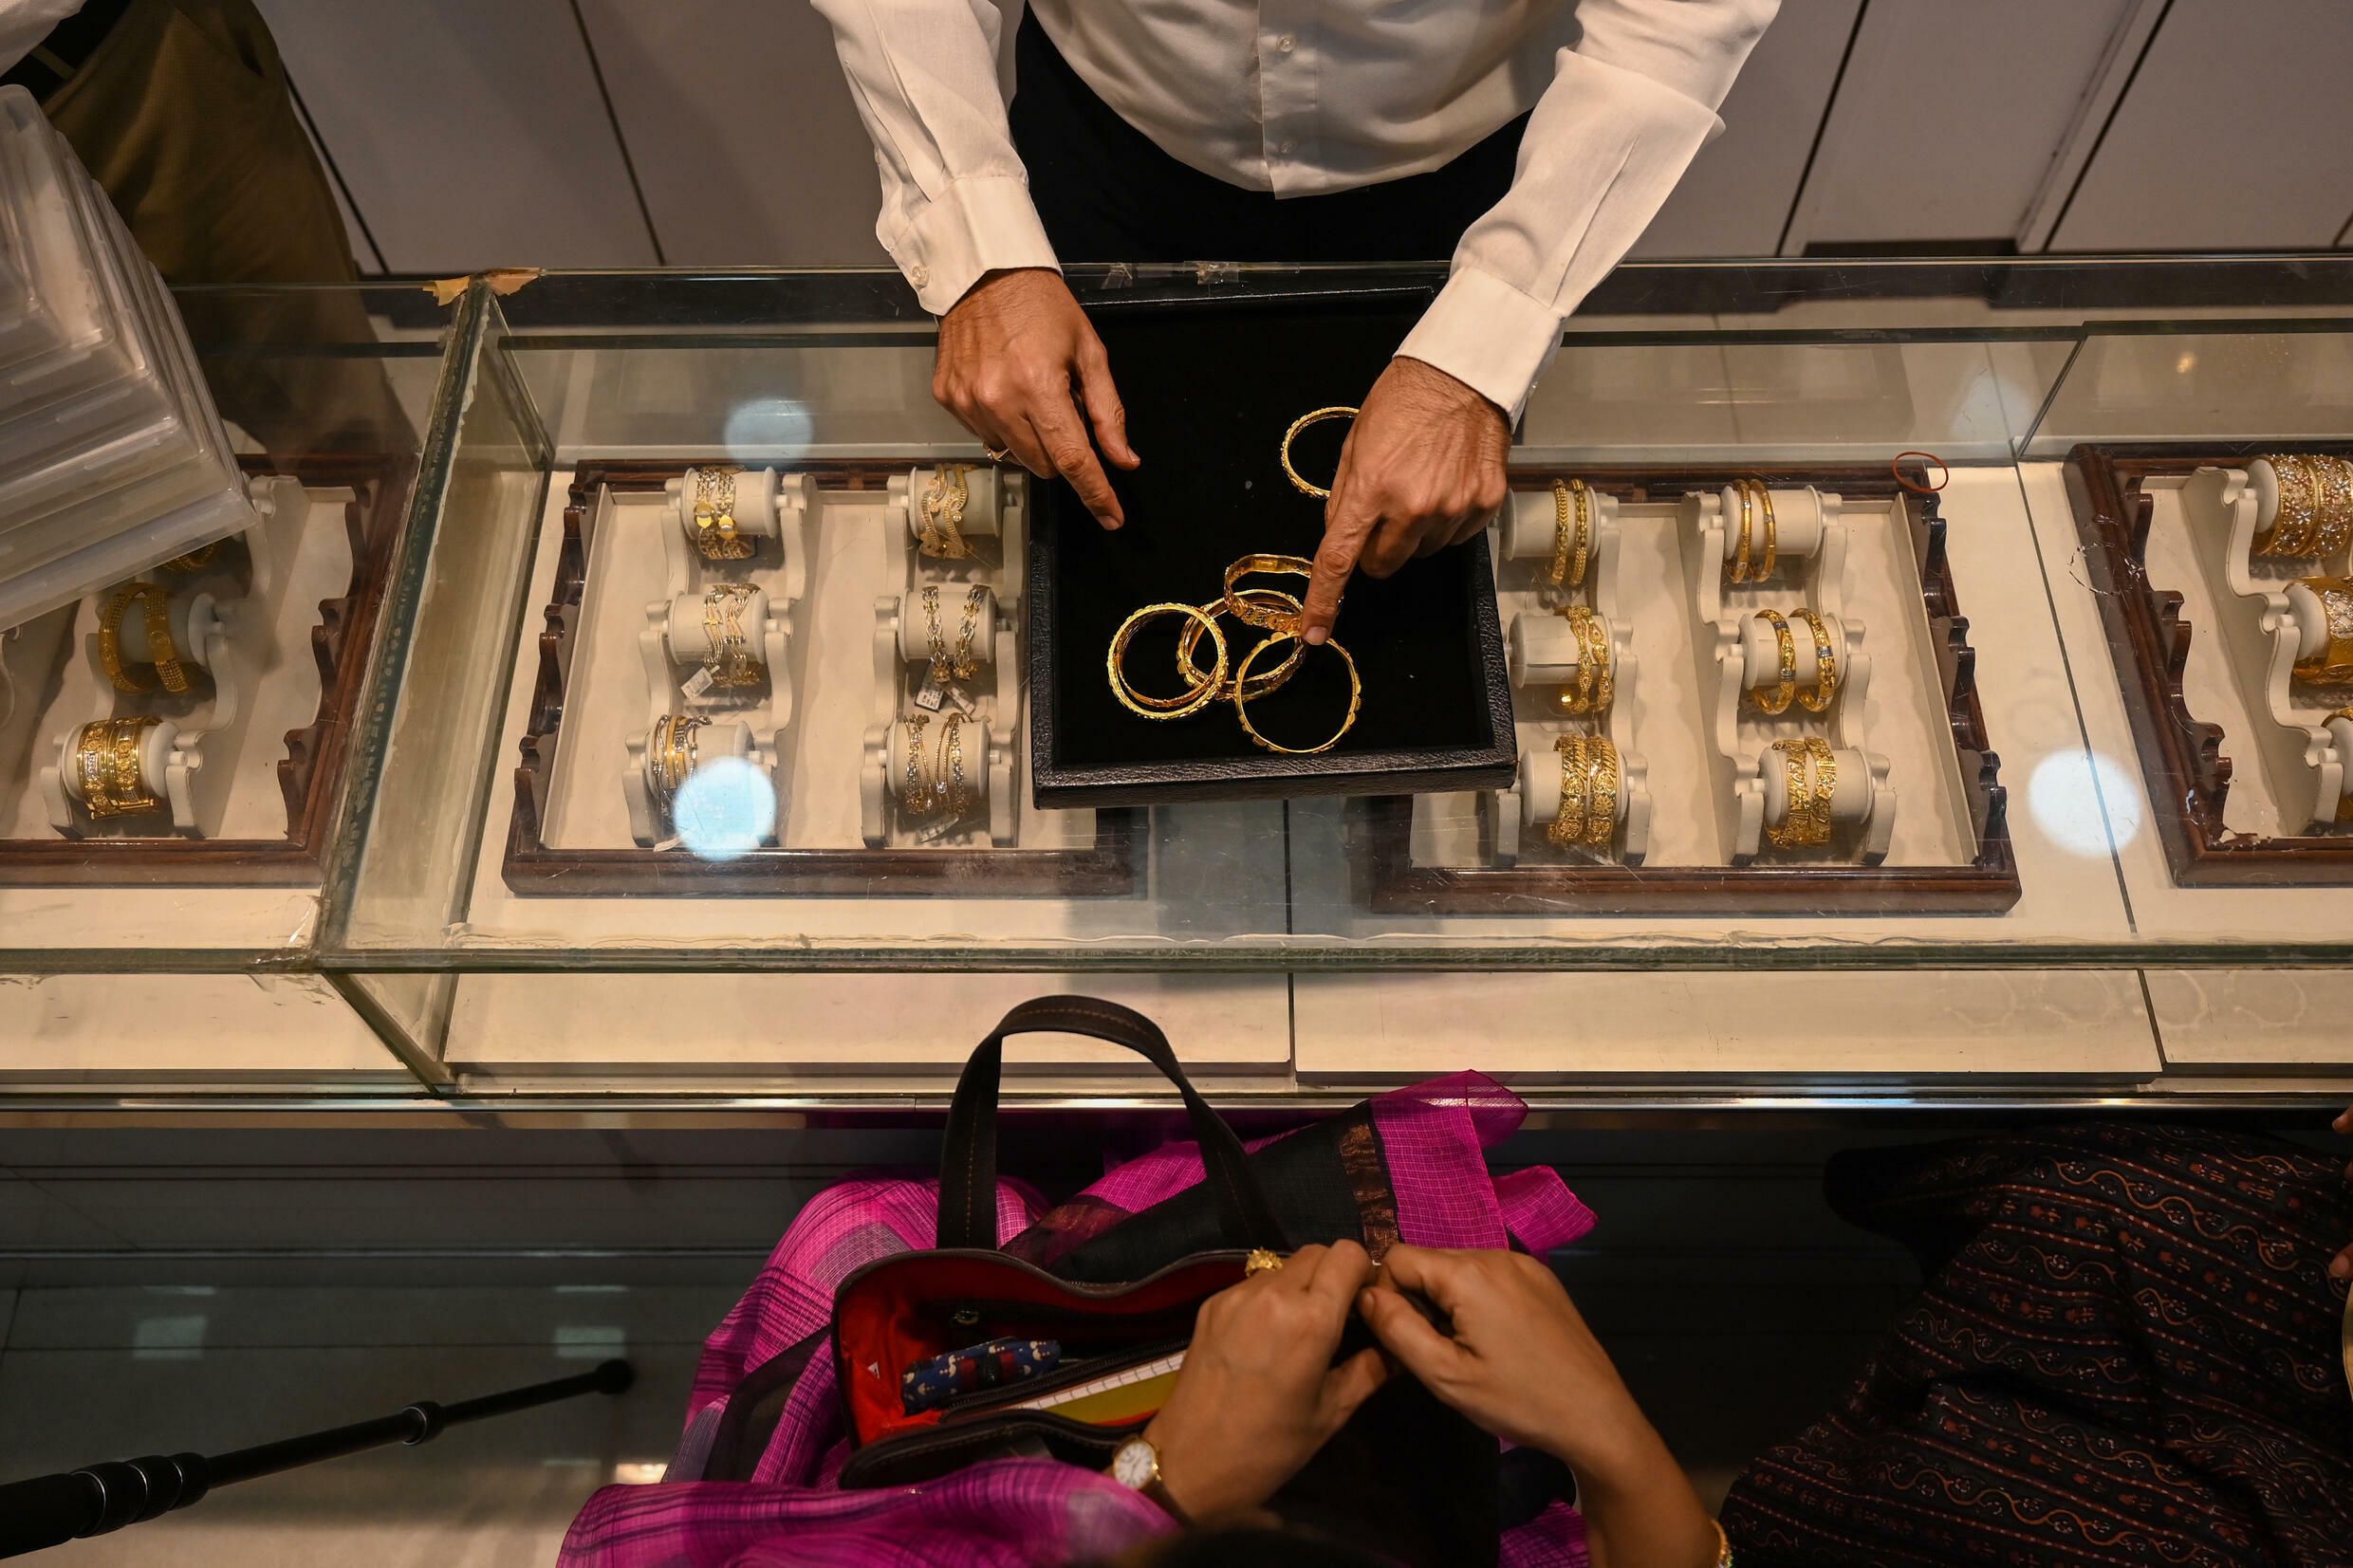 Desperate families and businesses have been forced to put gold jewelry as collateral to secure short-term loans, with banks lending 4.71 trillion rupees ($ 64 billion) in the first eight months of the year , an increase of 74% year over year.